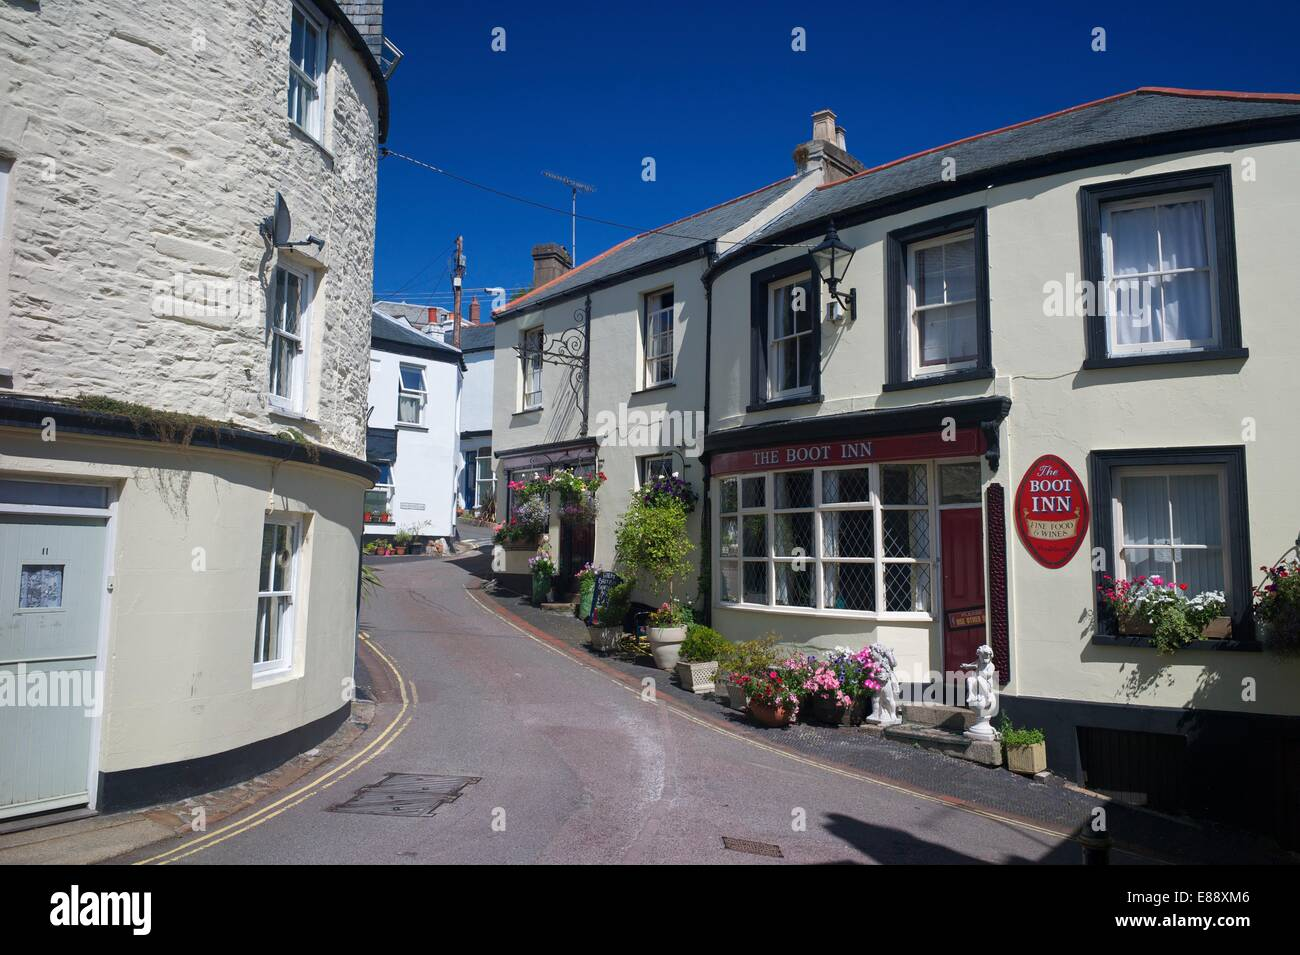 The Boot Inn Calstock Village Tamar Valley Cornwall England United Kingdom